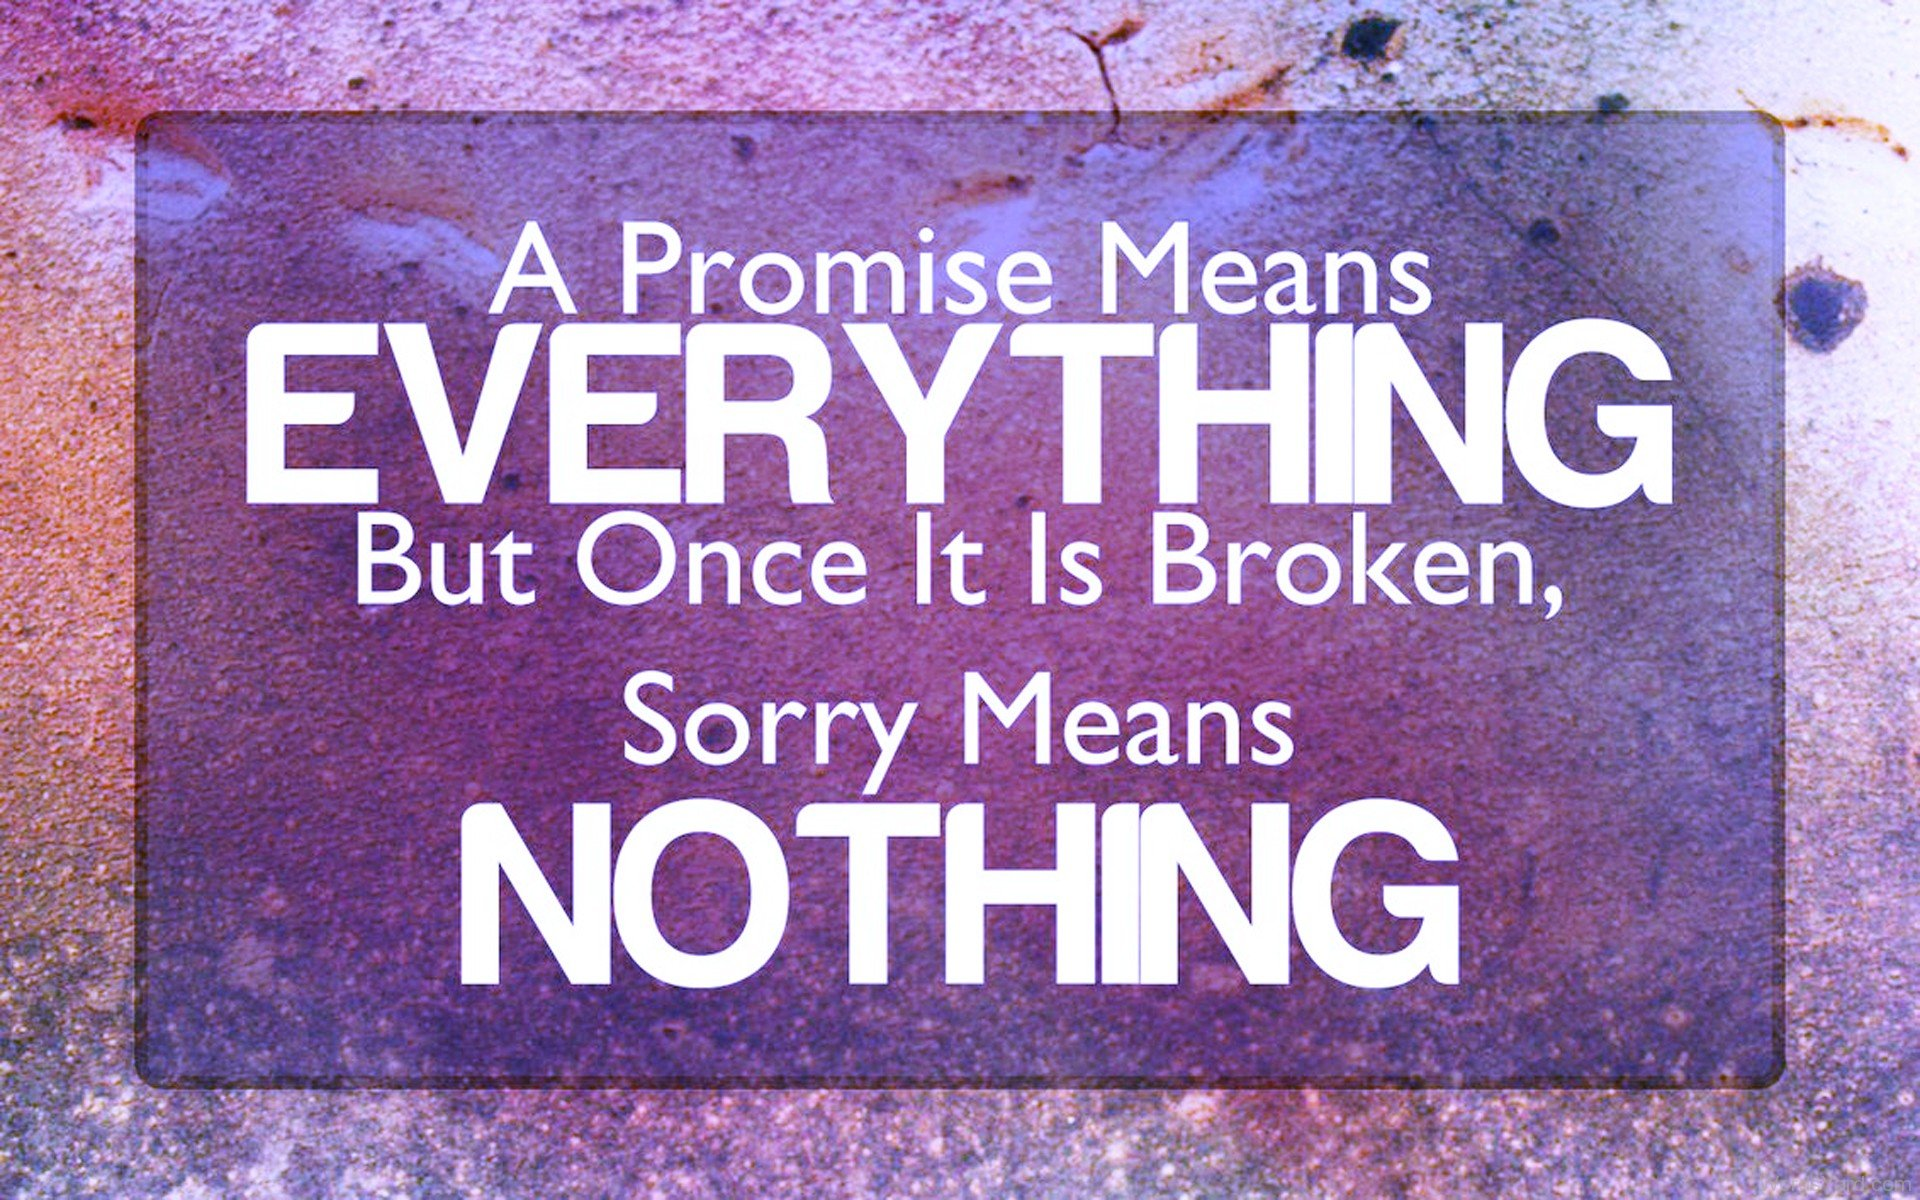 Words Mean Nothing Quotes Quotesgram: Sorry Means Nothing Quotes. QuotesGram